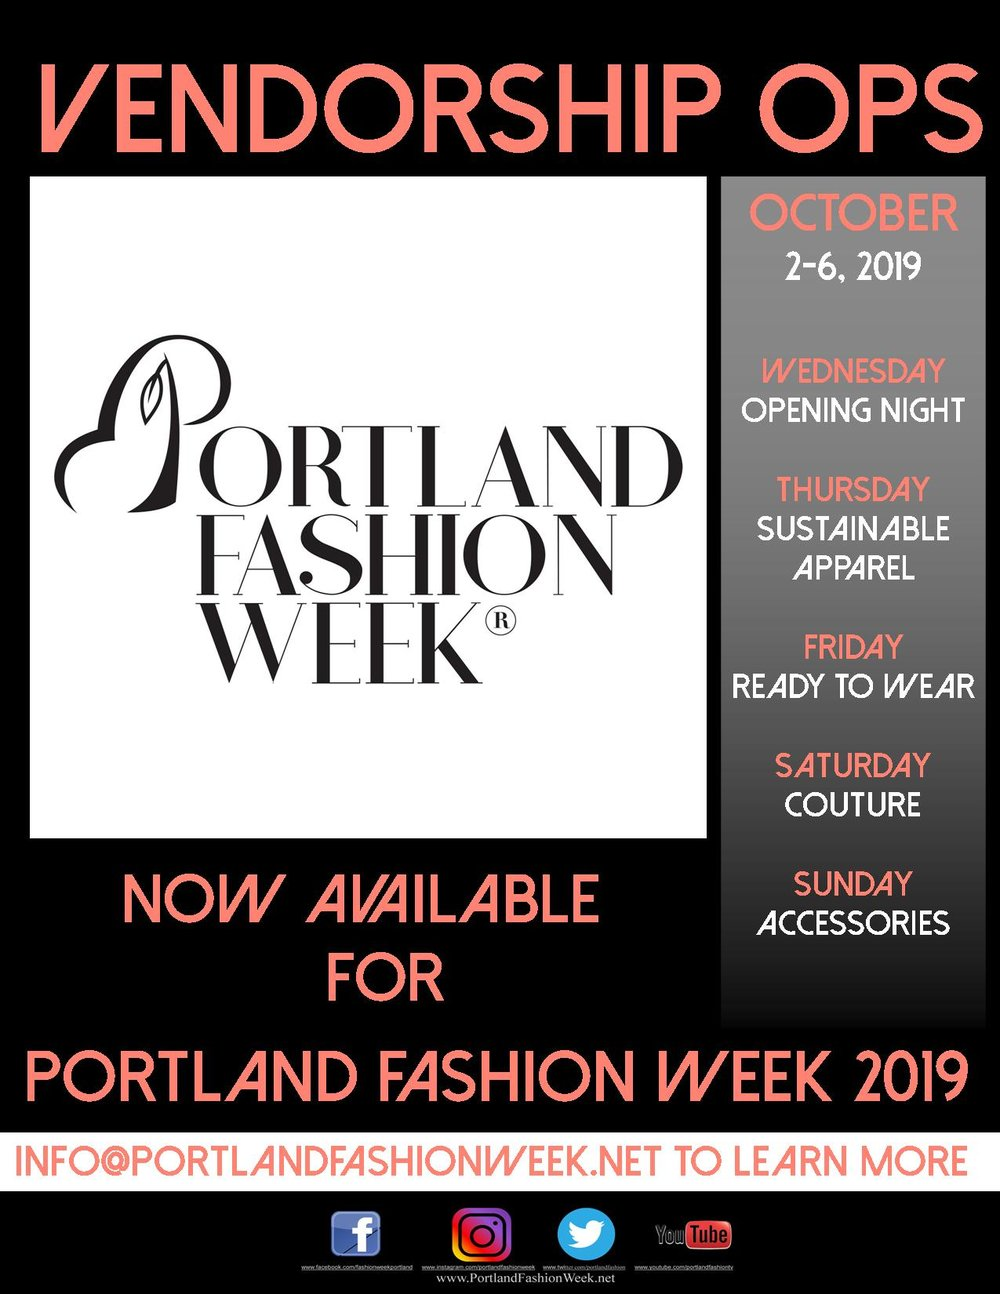 We have opened PFW 2019 - to a limited number of vendorship opportunities. Please contact us at info@portlandfashionweek.net to book your spot now.